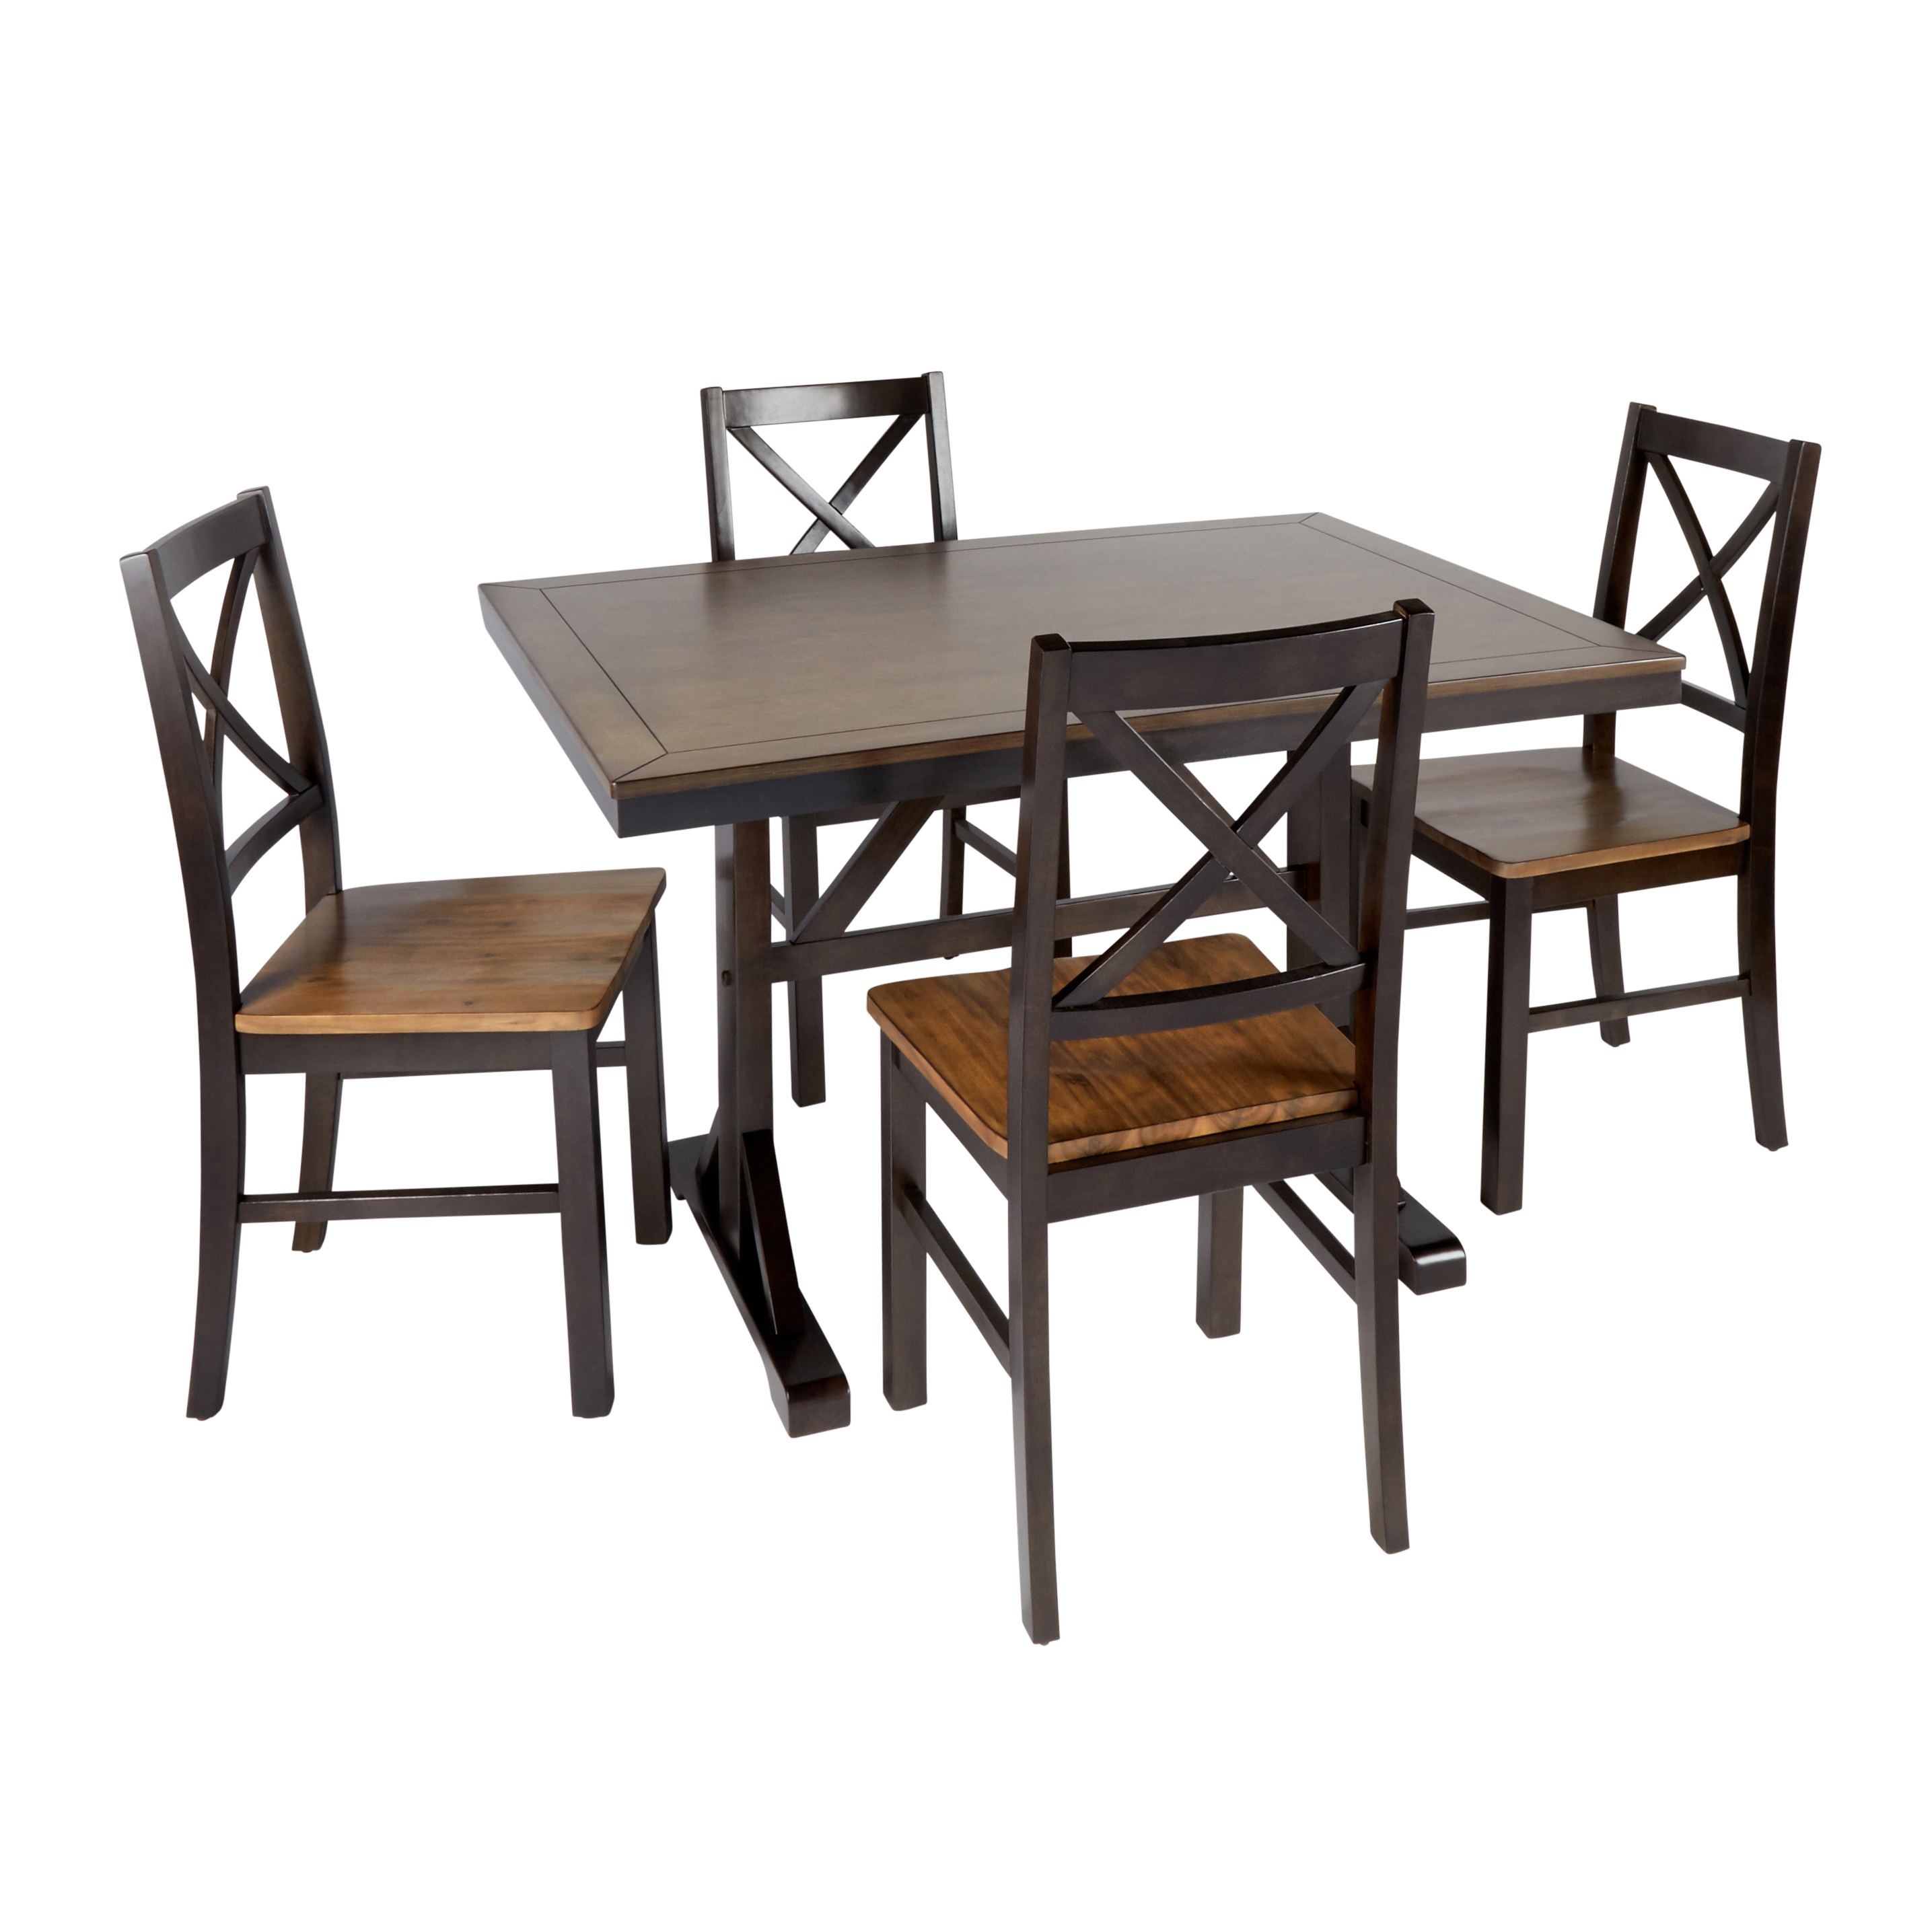 outdoor high top table and chairs set plastic straps for patio kitchen dining room storage christmas tree shops that 2 tone 5 piece view 1